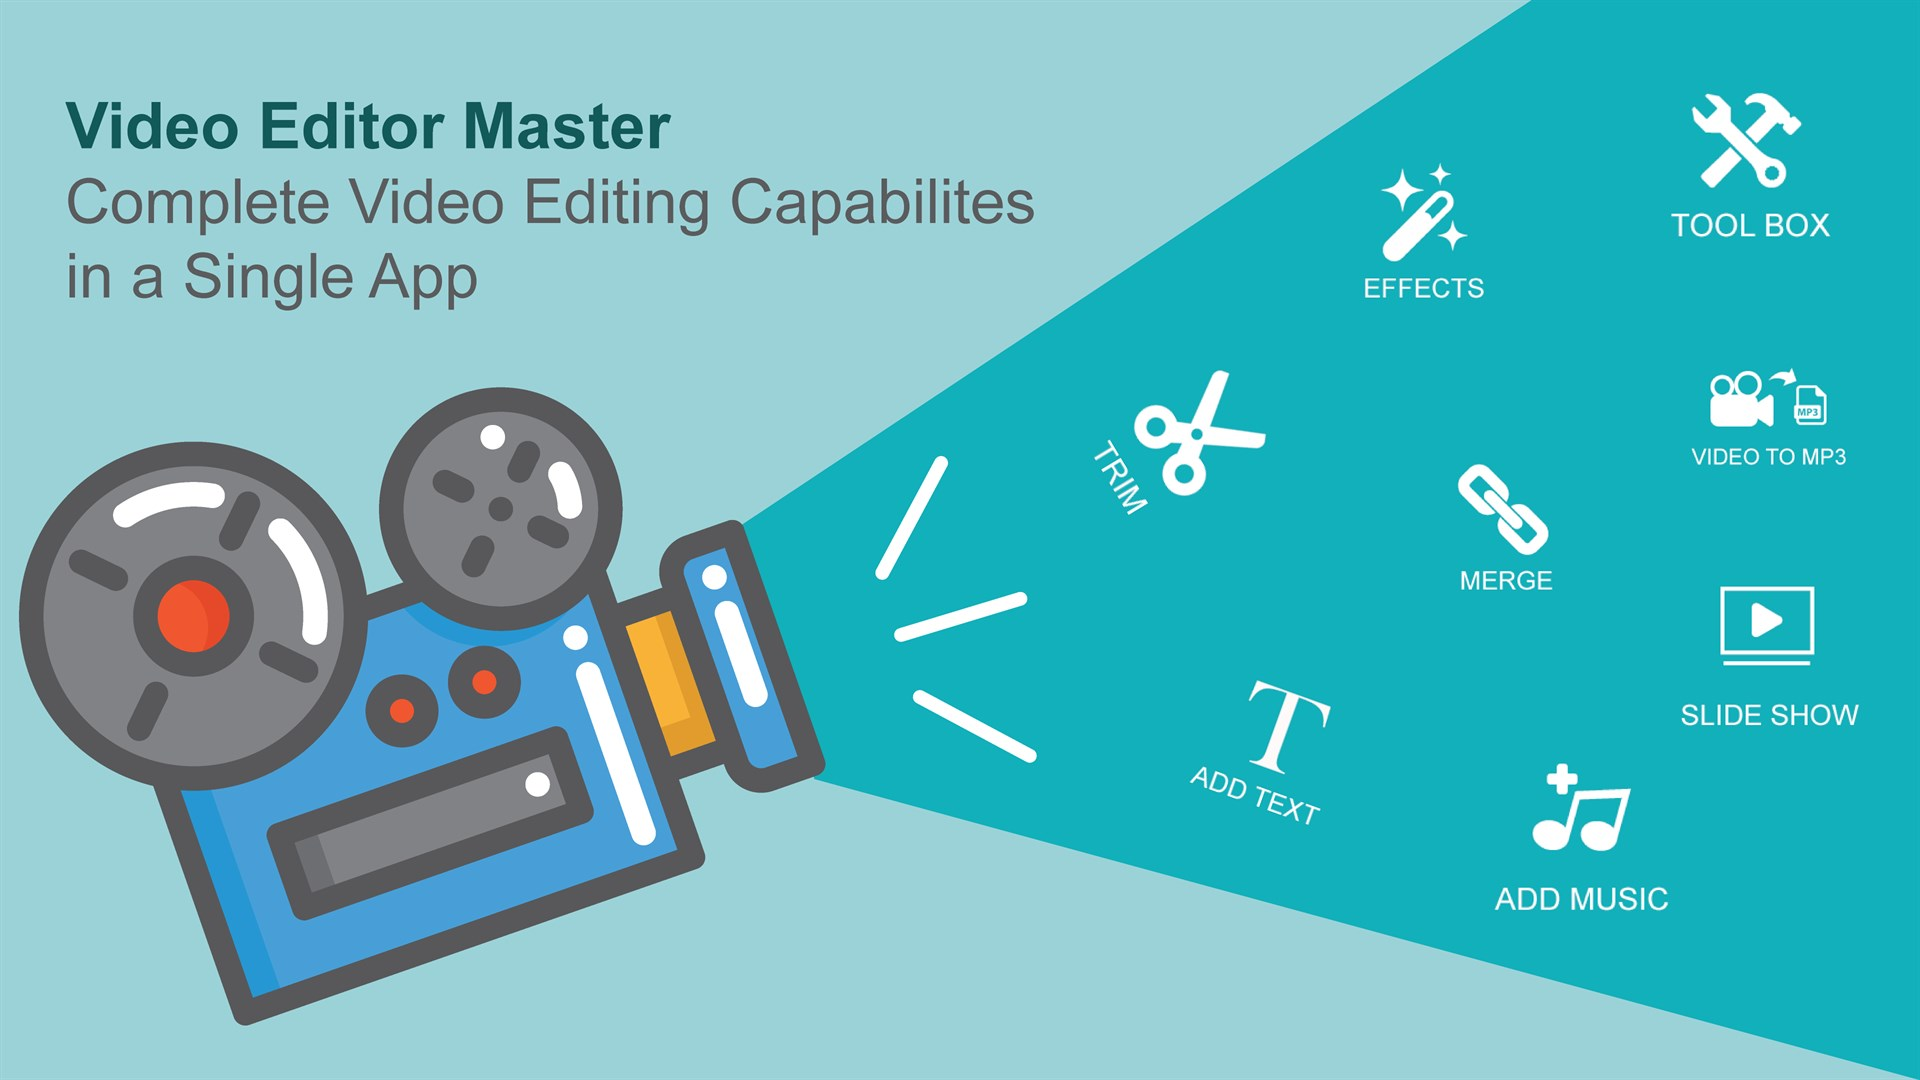 Get Video Editor Master - Microsoft Store